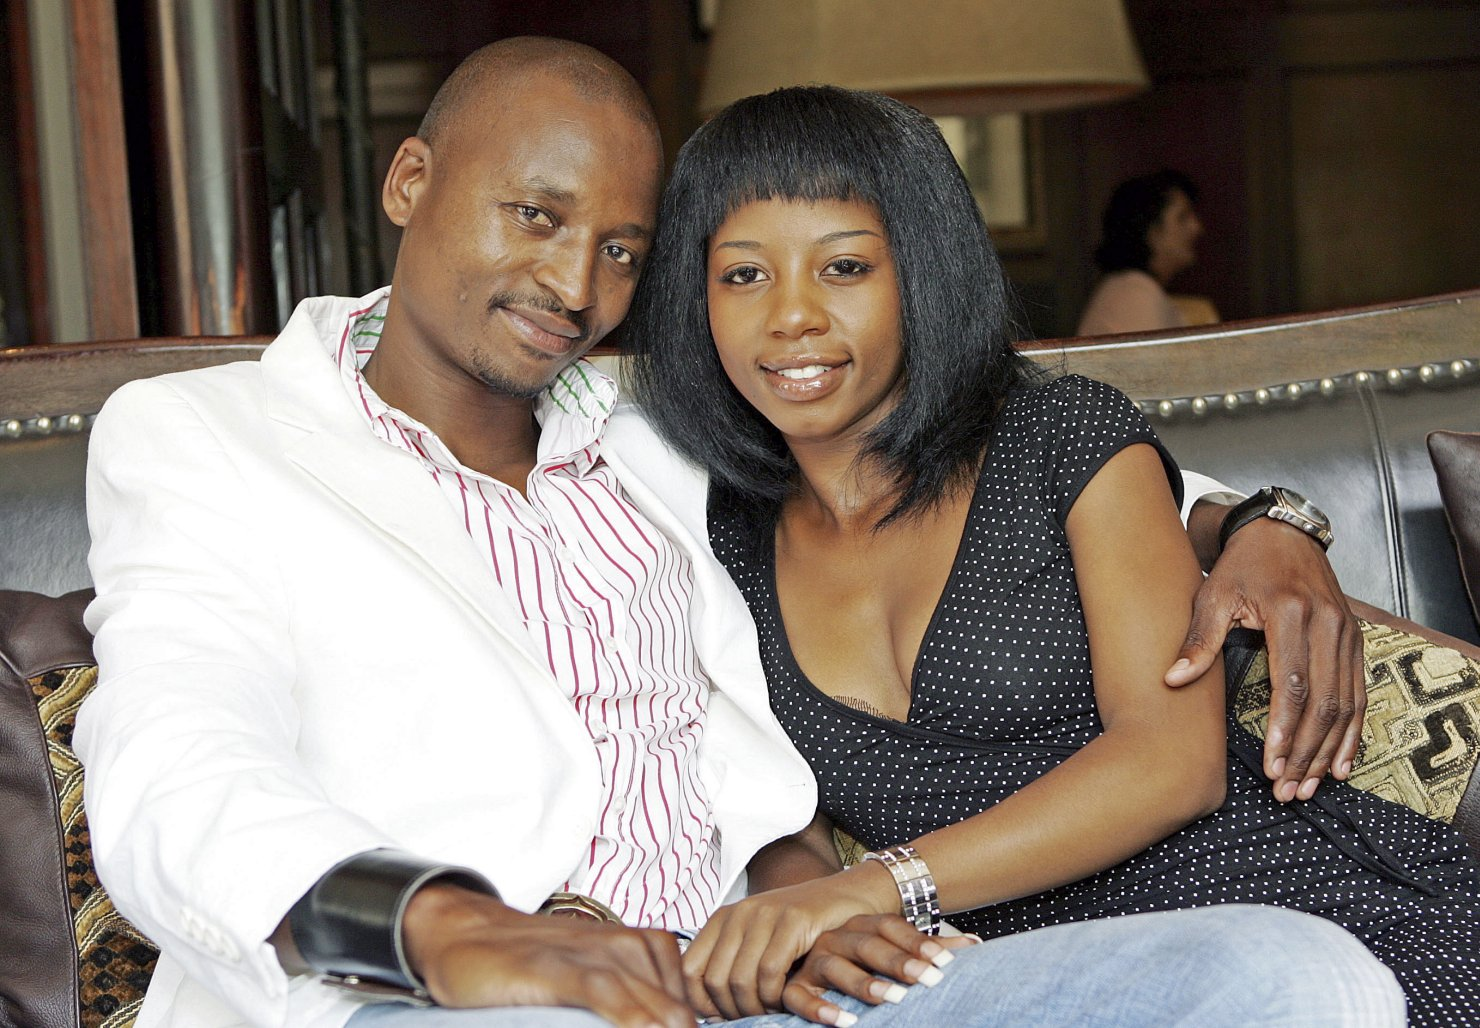 andile ncube dating somizi Tv guide channel # a wannabe romeo's luck runs out when the two girls he's dating find out about we're looking at andile ncube's journey in television, from.